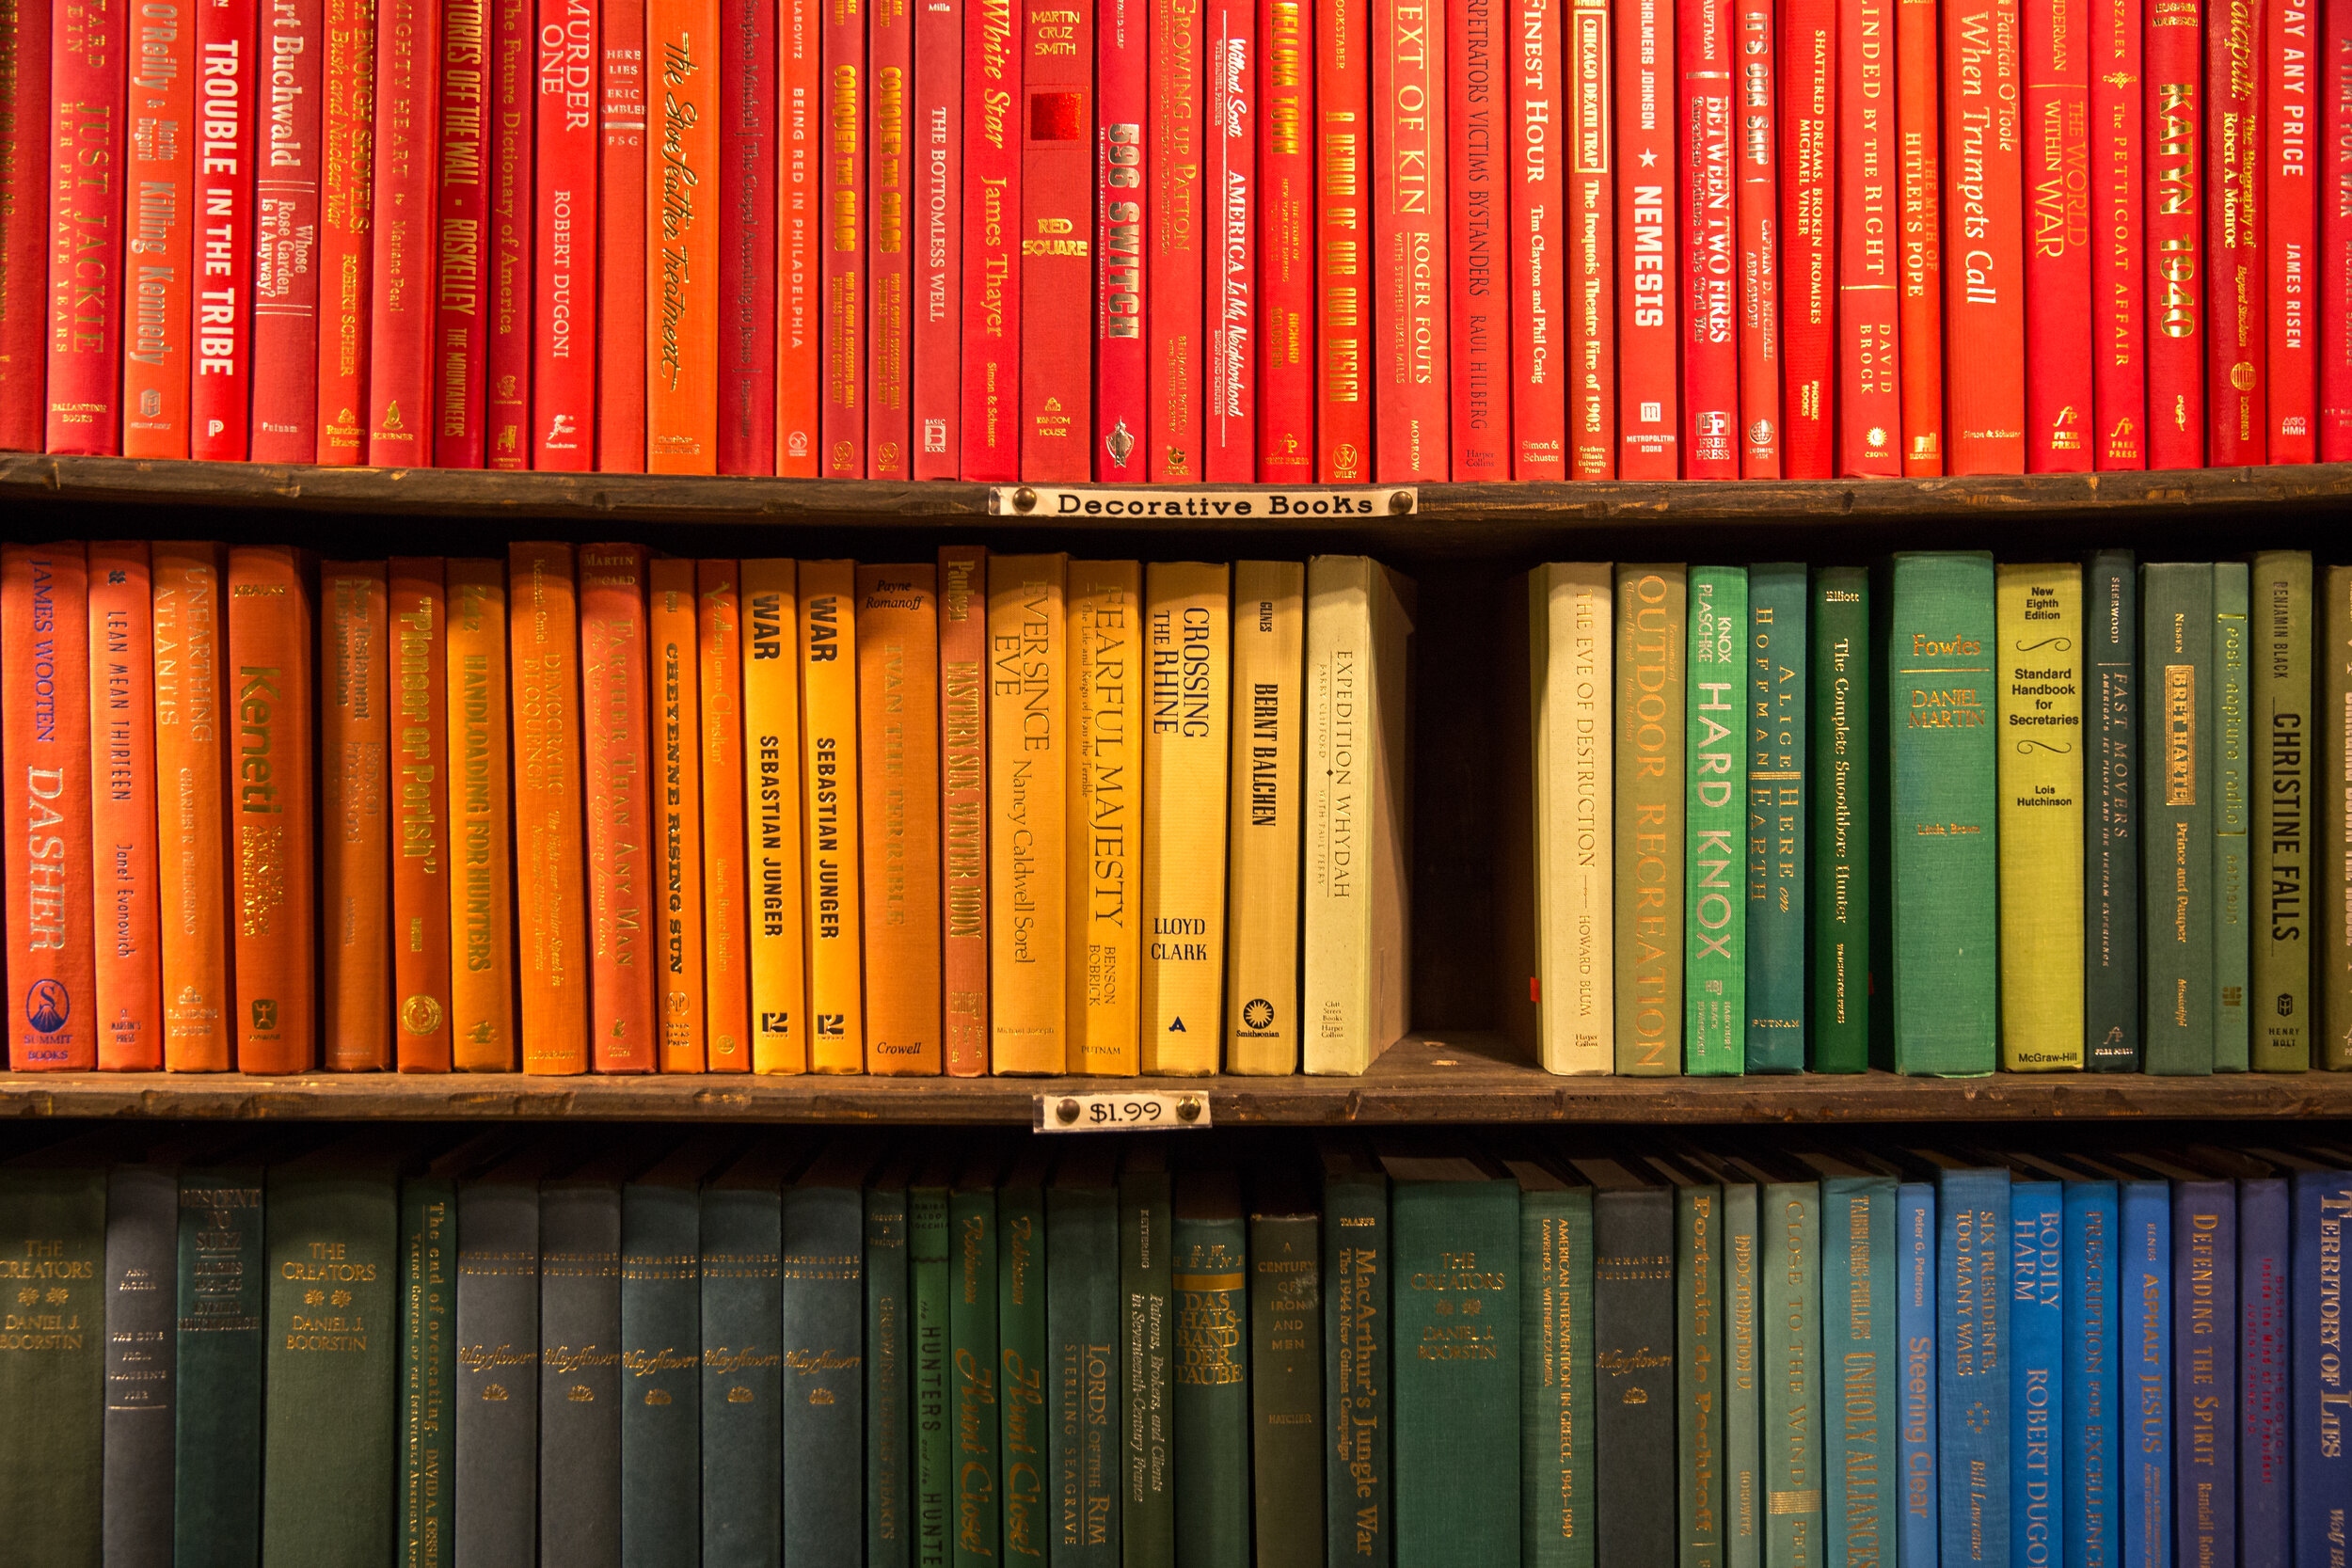 By Color   This is perhaps one of the best ways to organize your books if you are looking to create a visual statement, though it can be one of the most exhausting to pull off. To effectively organize your bookshelf based on color, I recommend splitting books into color categories based on the color of their spine. Once you have your books paired into colors, take it a step further and group the books in that color category based on how dark or light the coloring is.  After you have divided the books into your color groups, display them on your shelves in descending order so that it creates kind of an ombre look. If you want your shelves to truly make an impact in your home decor, this is absolutely the way to display them!  However, it should be mentioned that if you elect to go the color organization route that you cannot choose to simultaneously organize them with a second method such as alphabetization. This will ruin how the colored spines are displayed. And though this might seem like it would be a hard way to go back and find an old book to read, if you can remember the cover, things are usually pretty easy to find! Plus, this organization method makes your shelves totally Instagrammable!